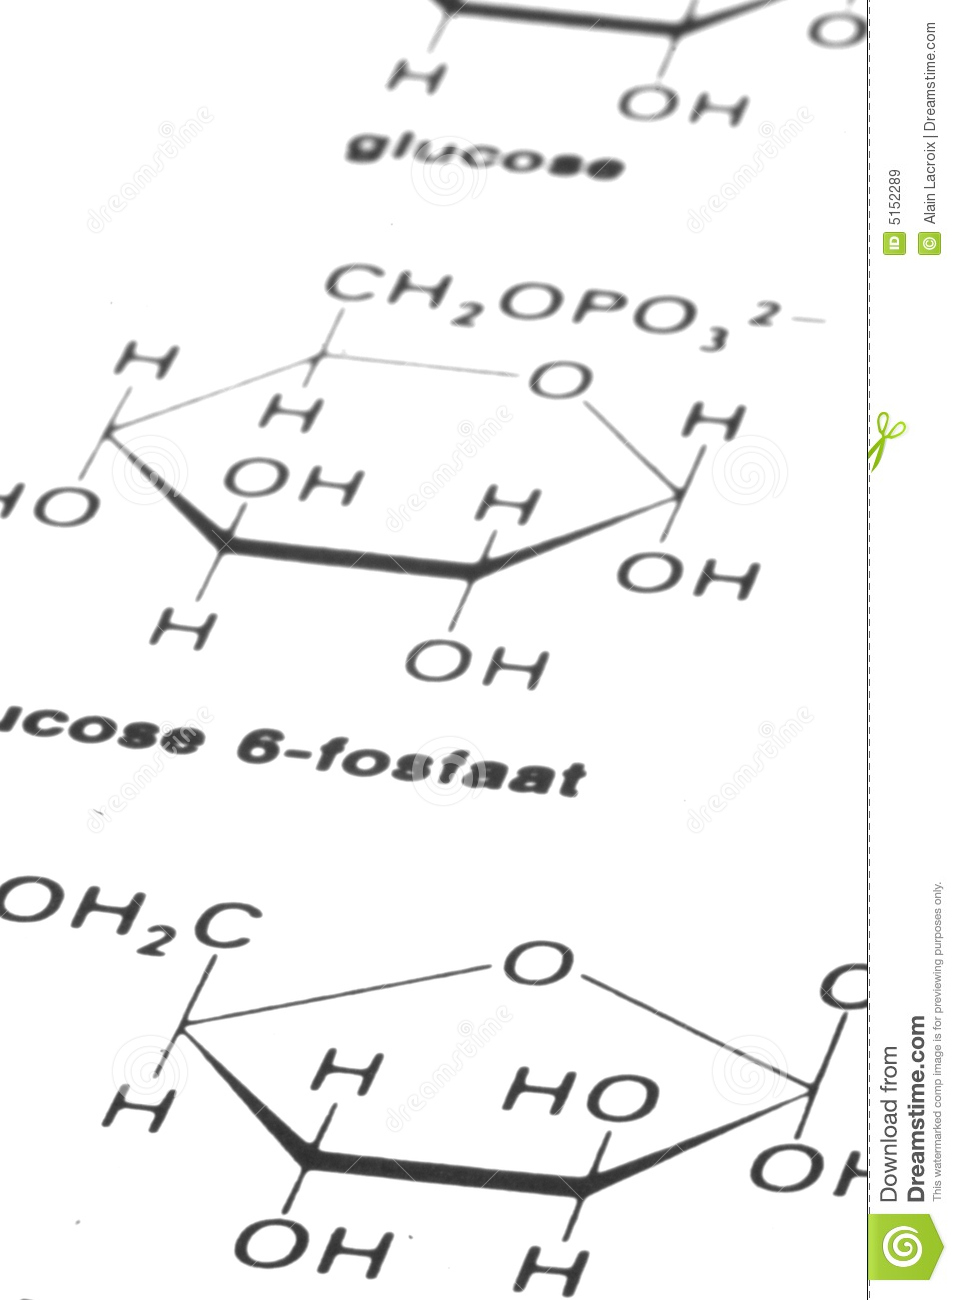 chemistry formulas royalty free stock images